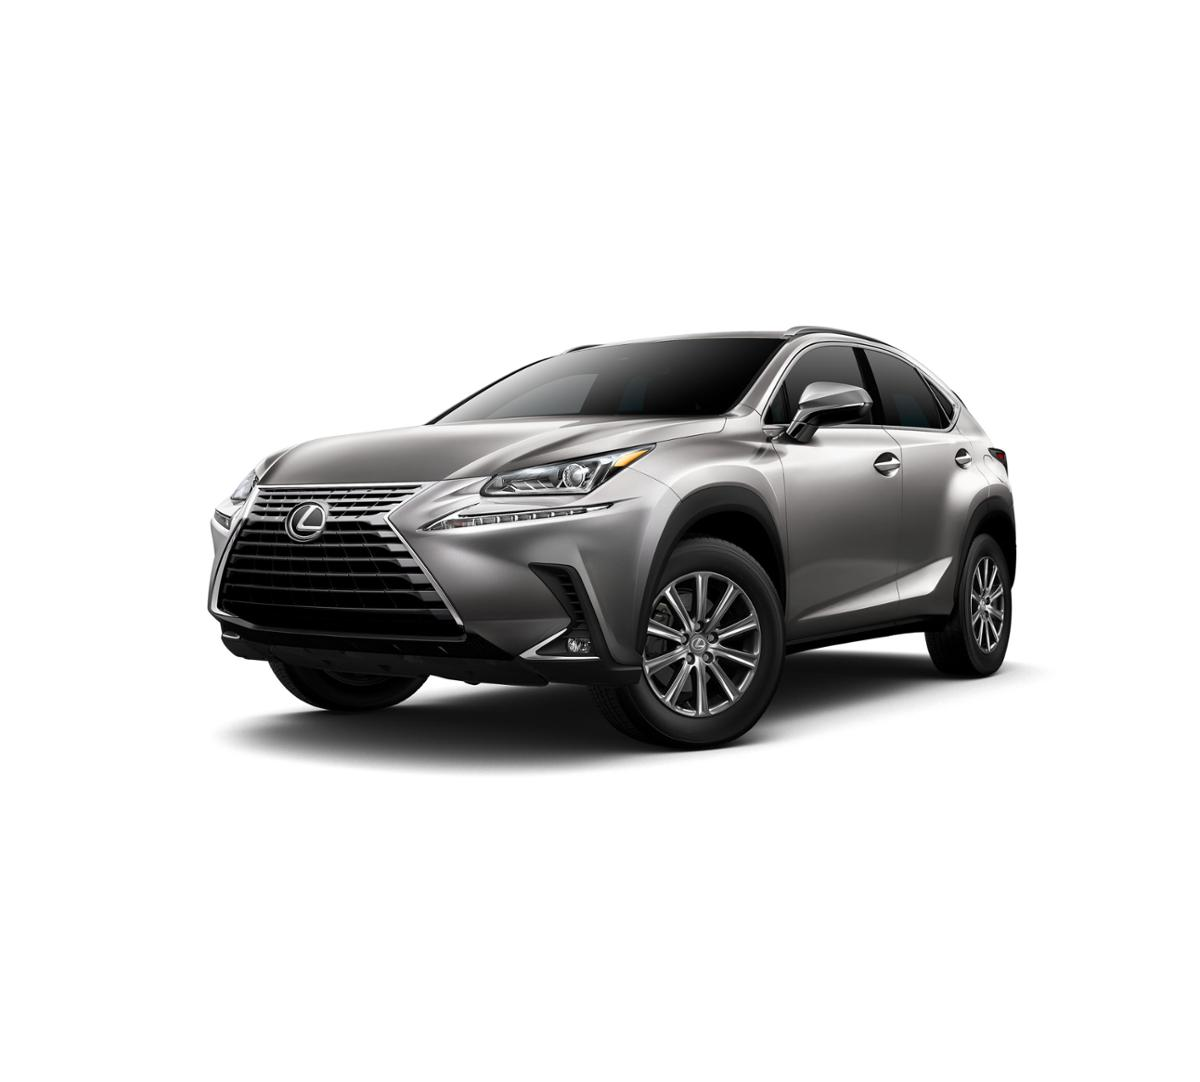 2018 Lexus NX 300 Vehicle Photo in Las Vegas, NV 89146